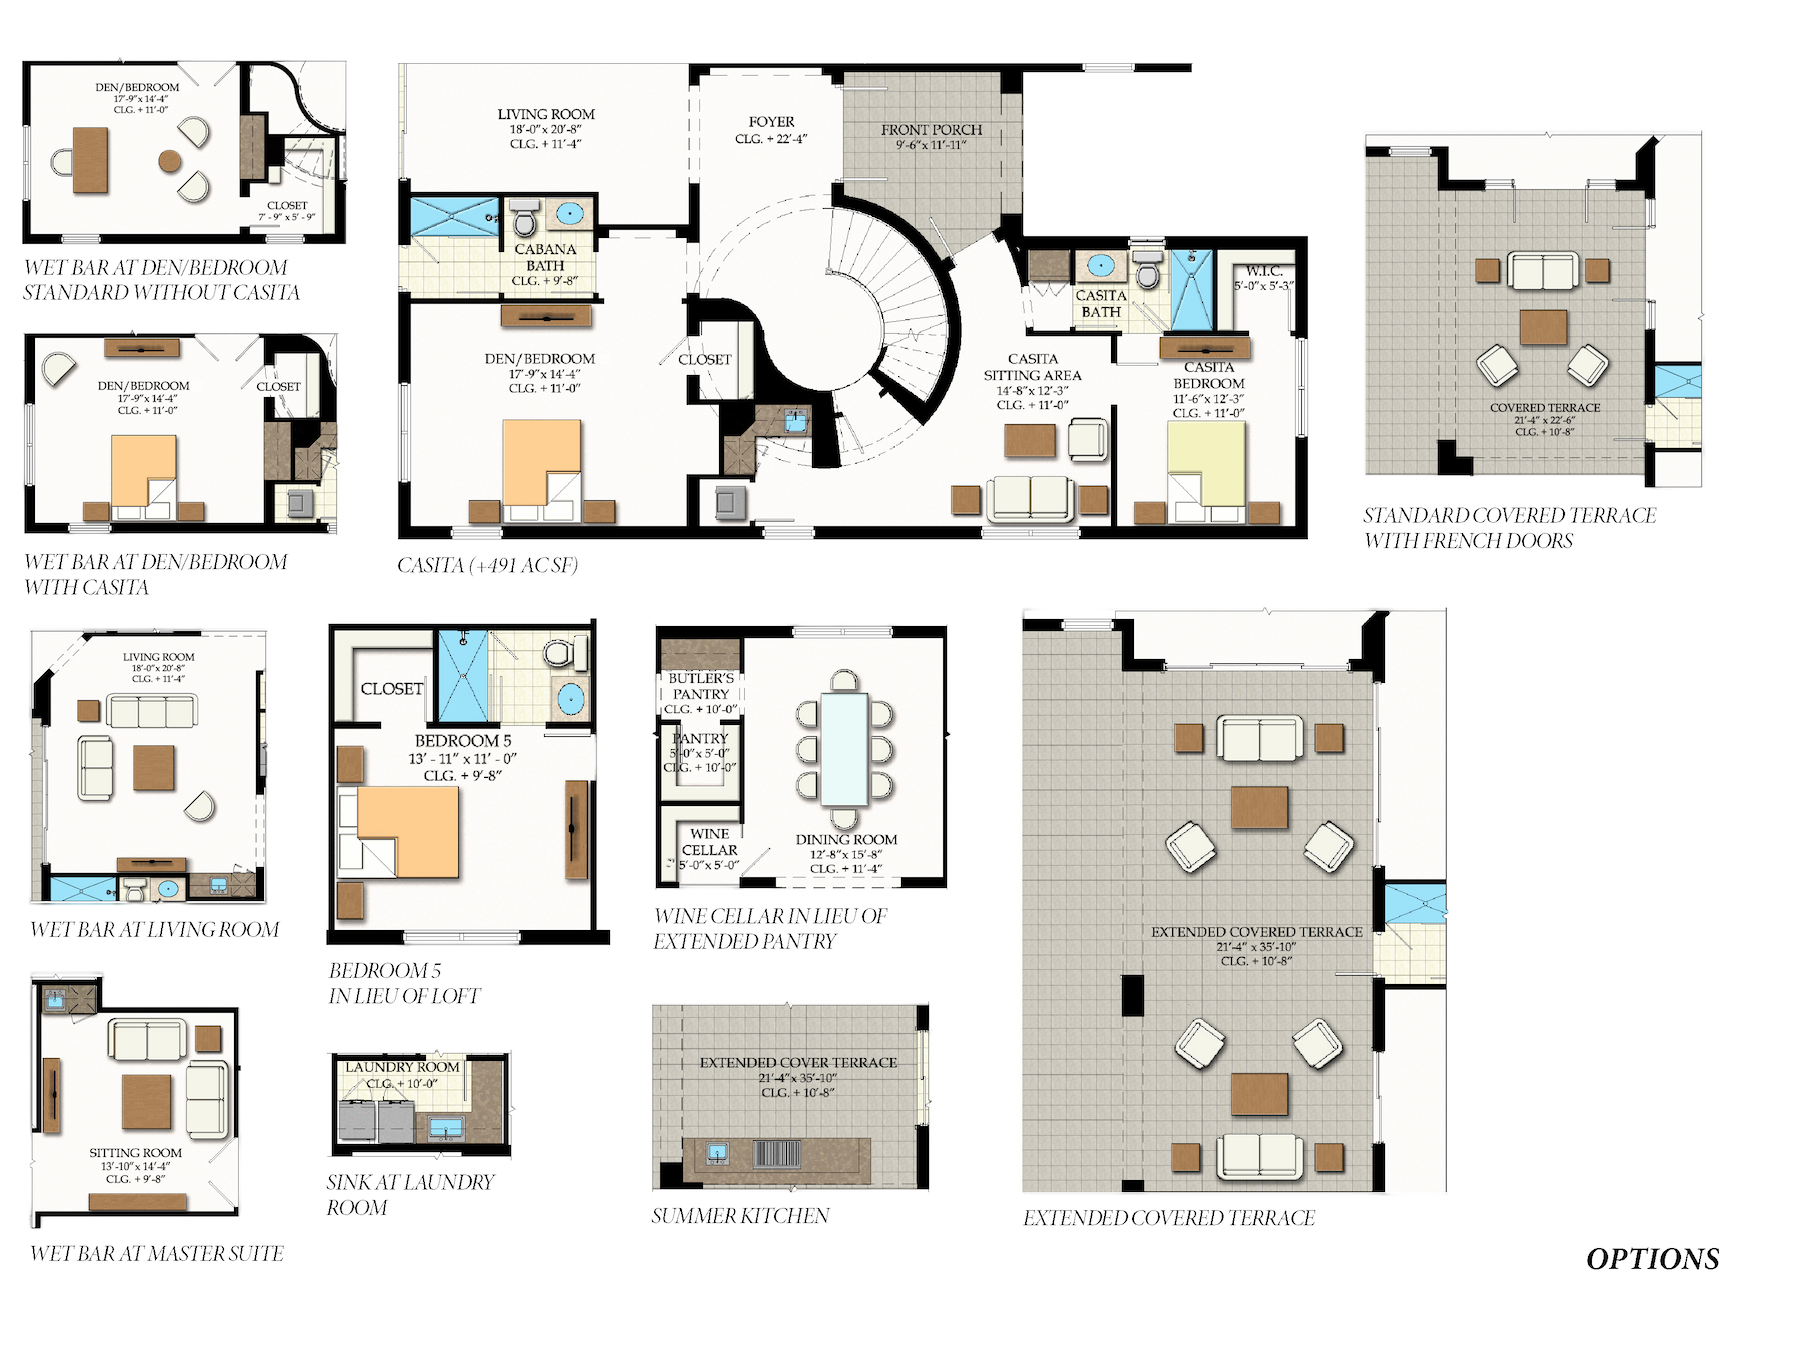 Orleans Options: Additional options to customize floor plan